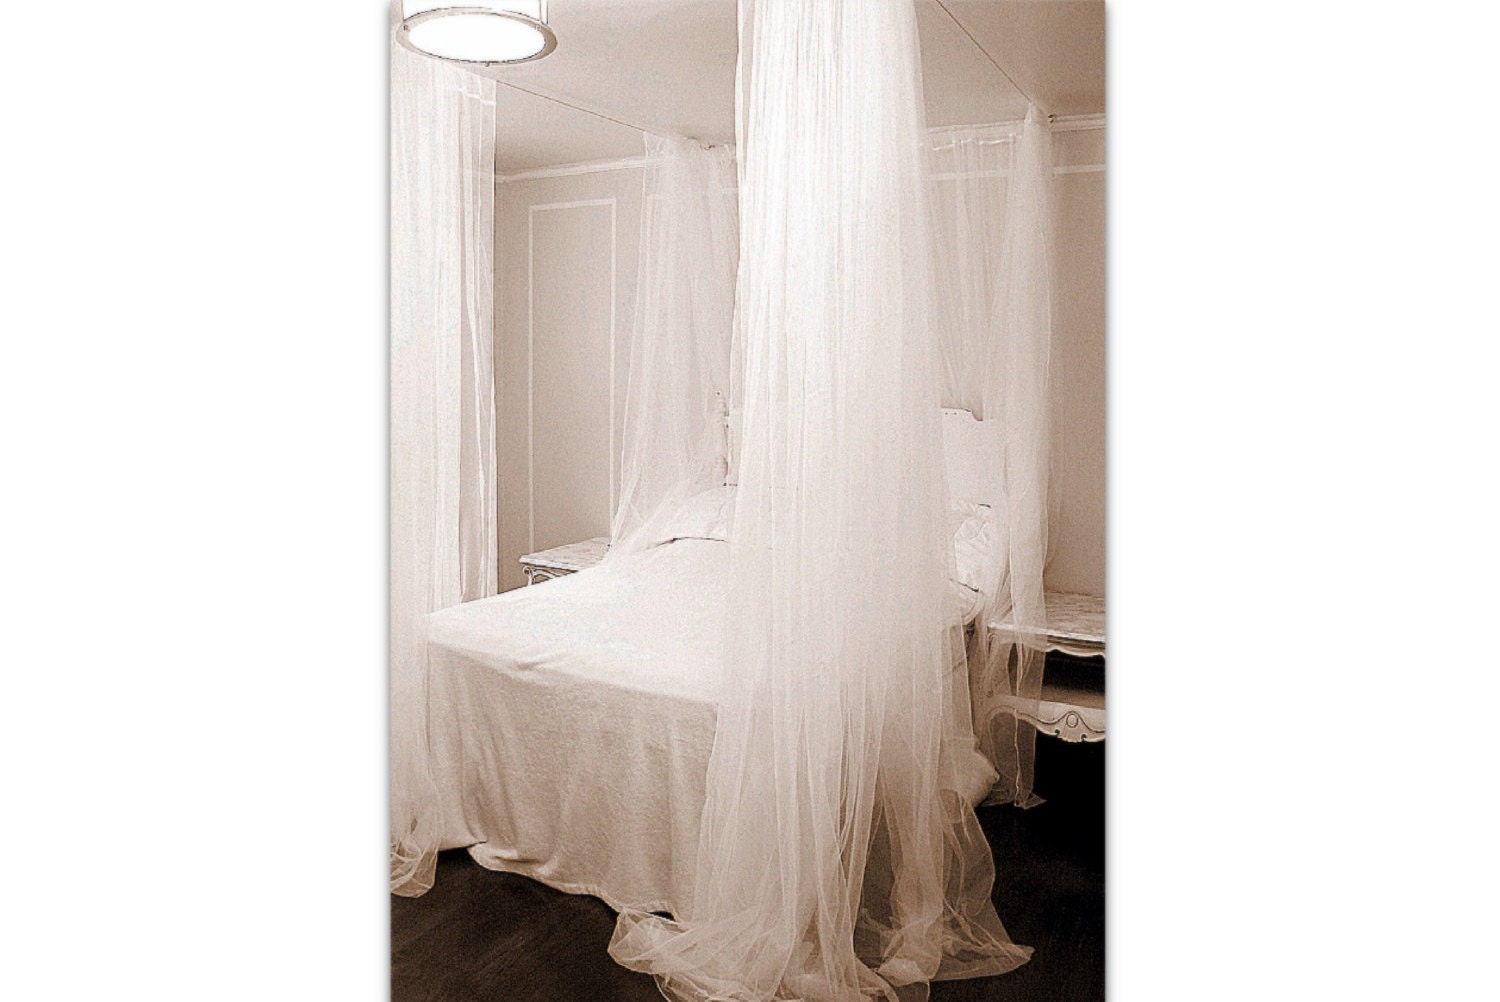 Twin Size Boho Bed Canopy Curtains White Bohemian Bedroom